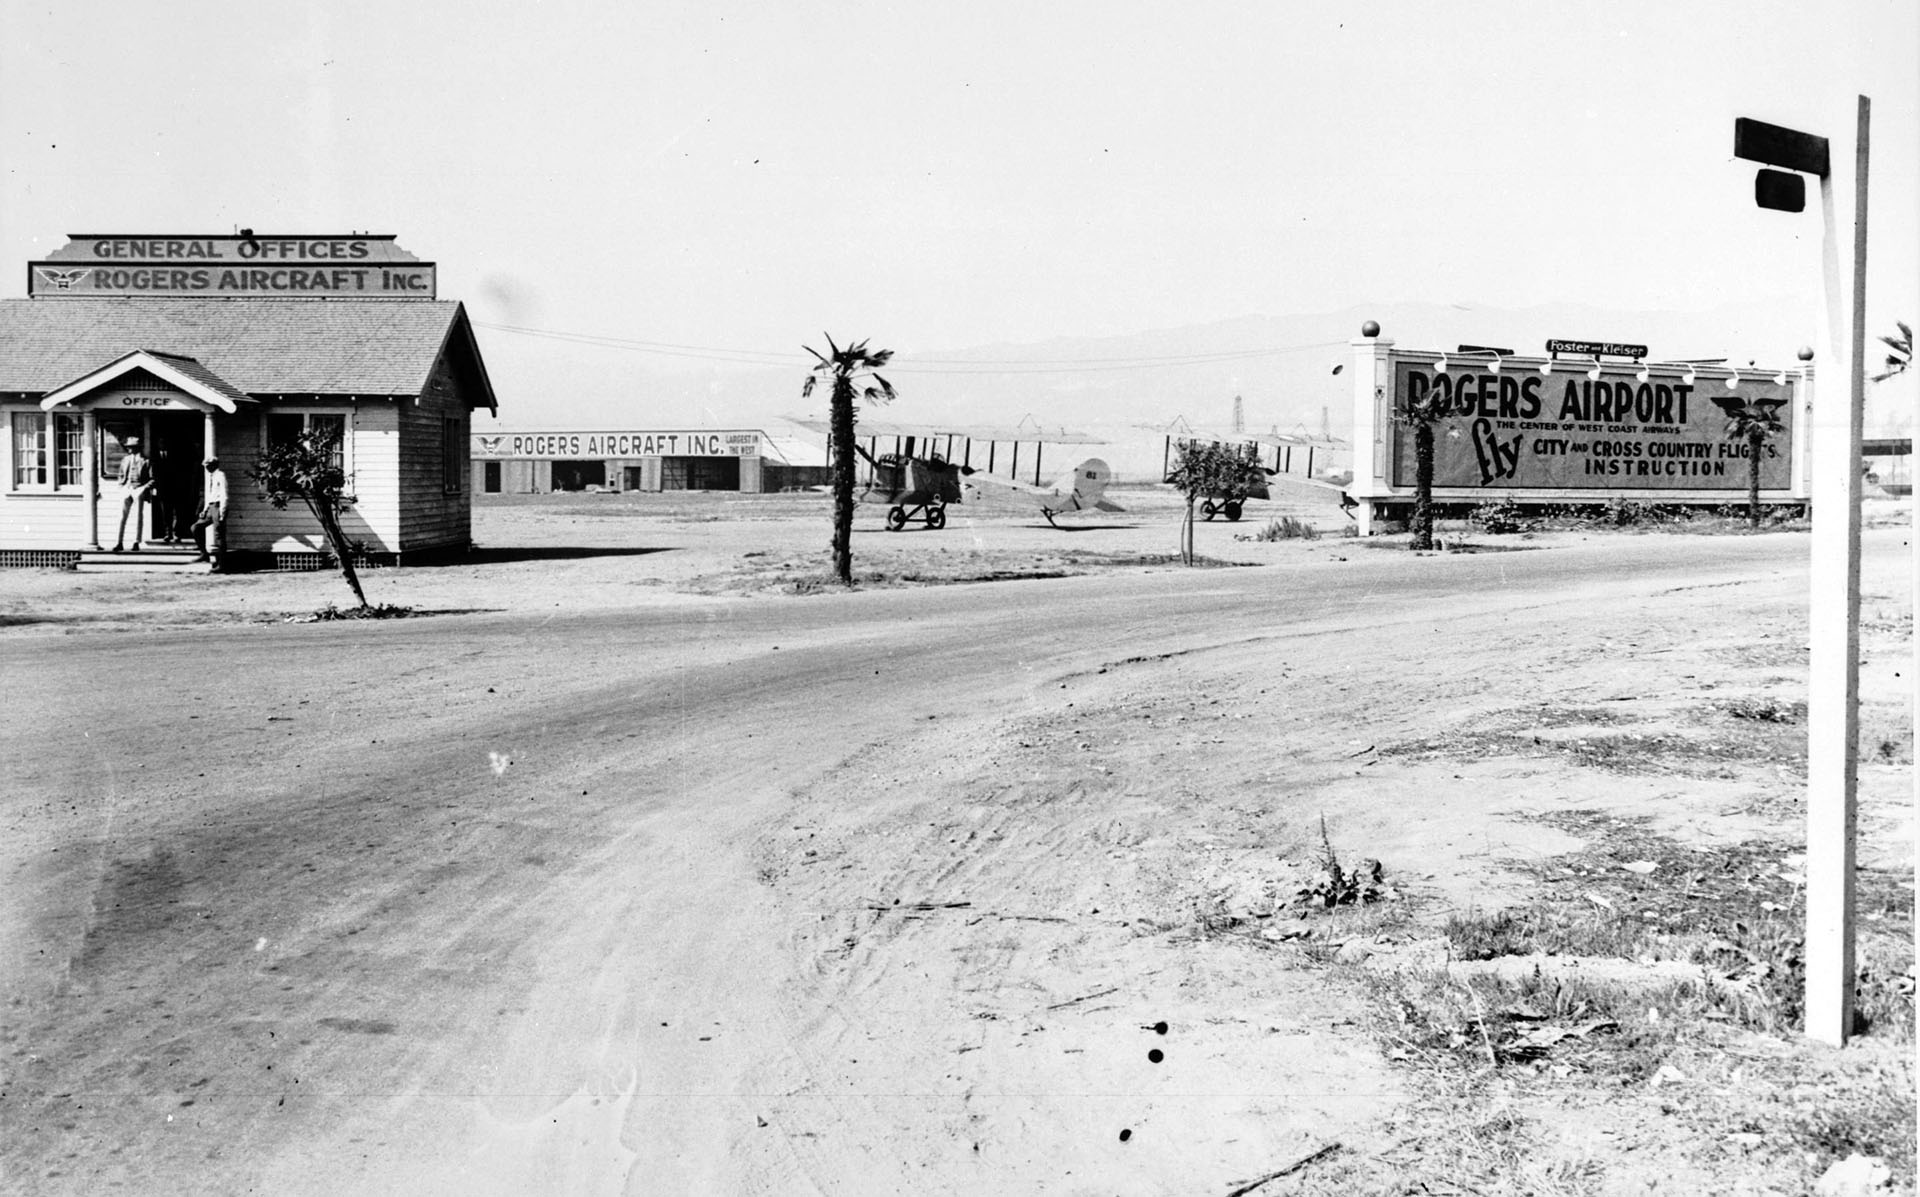 View of Rogers Airport, located at the corner of Wilshire Boulevard and Fairfax Street, looking west toward the general office and hangars, 1922